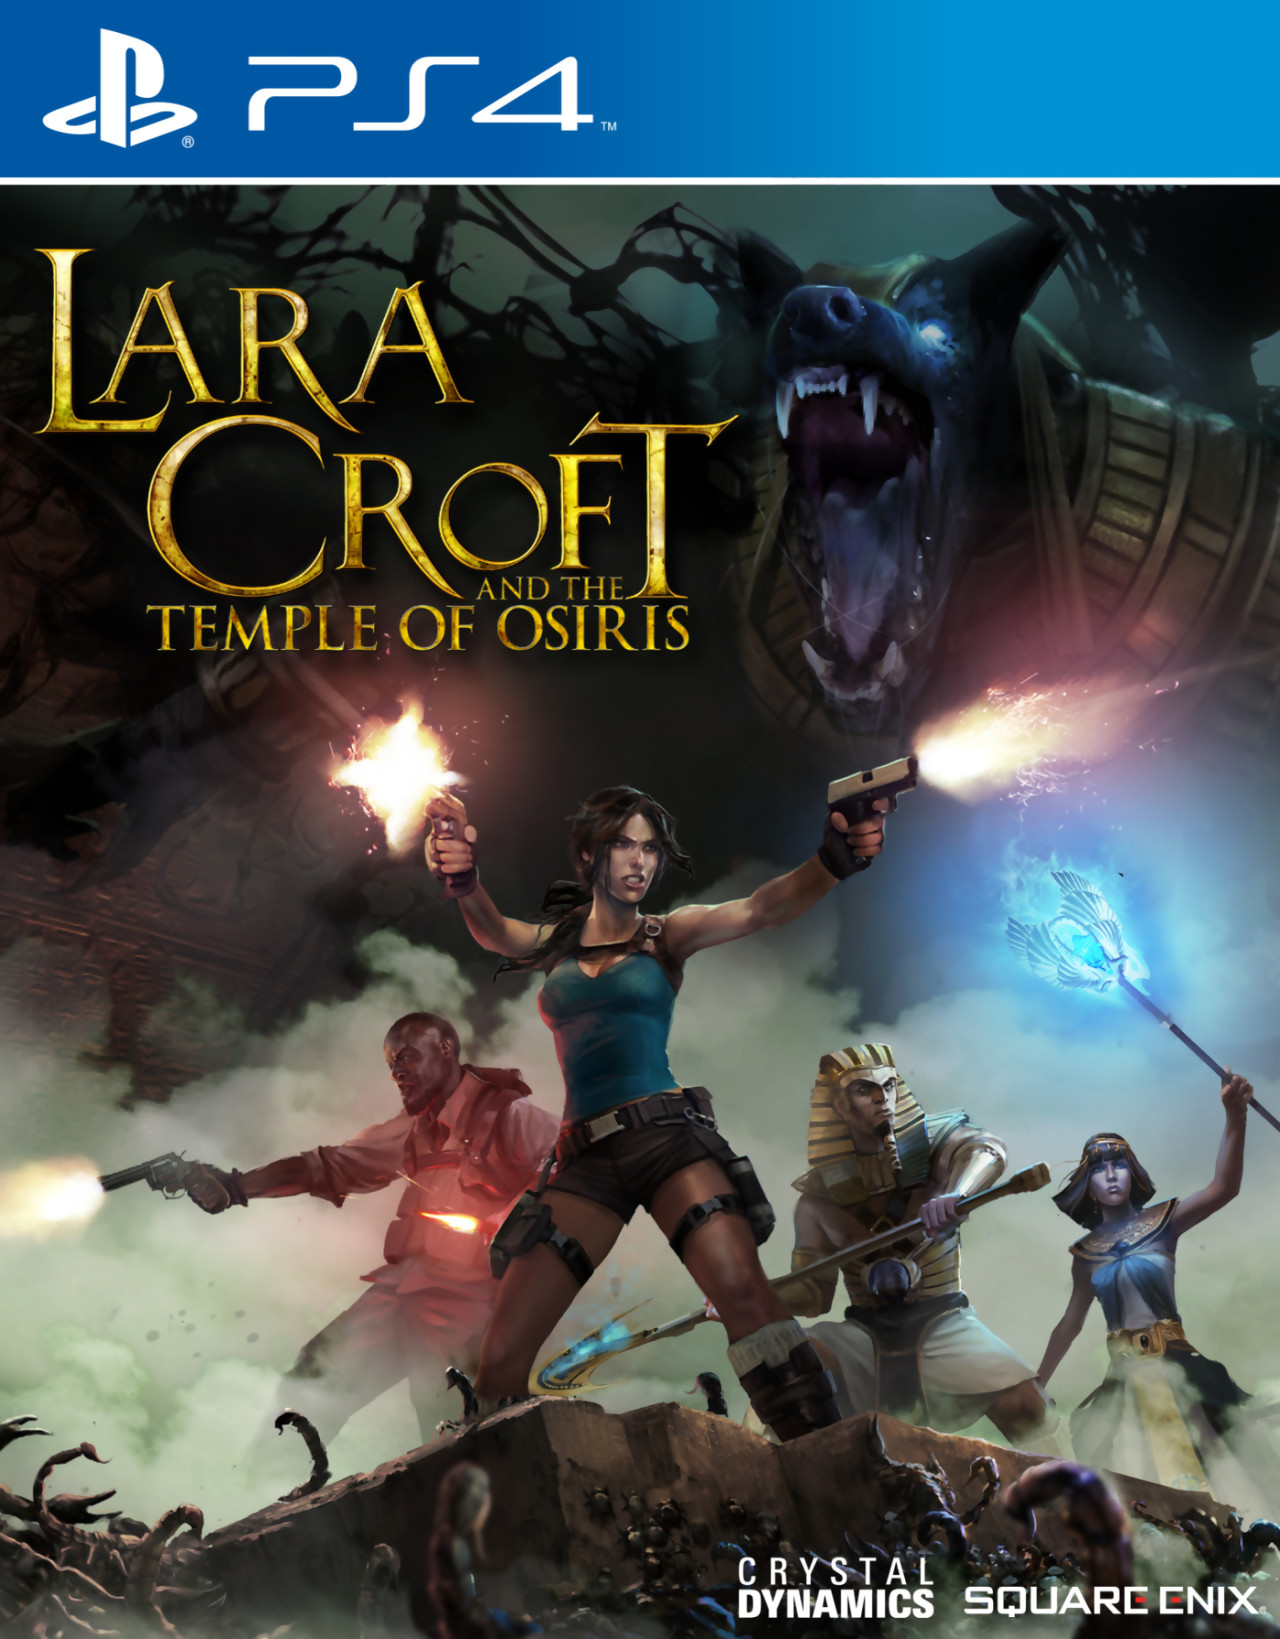 lara croft and the temple of osiris gameplay trailer sur ps4. Black Bedroom Furniture Sets. Home Design Ideas